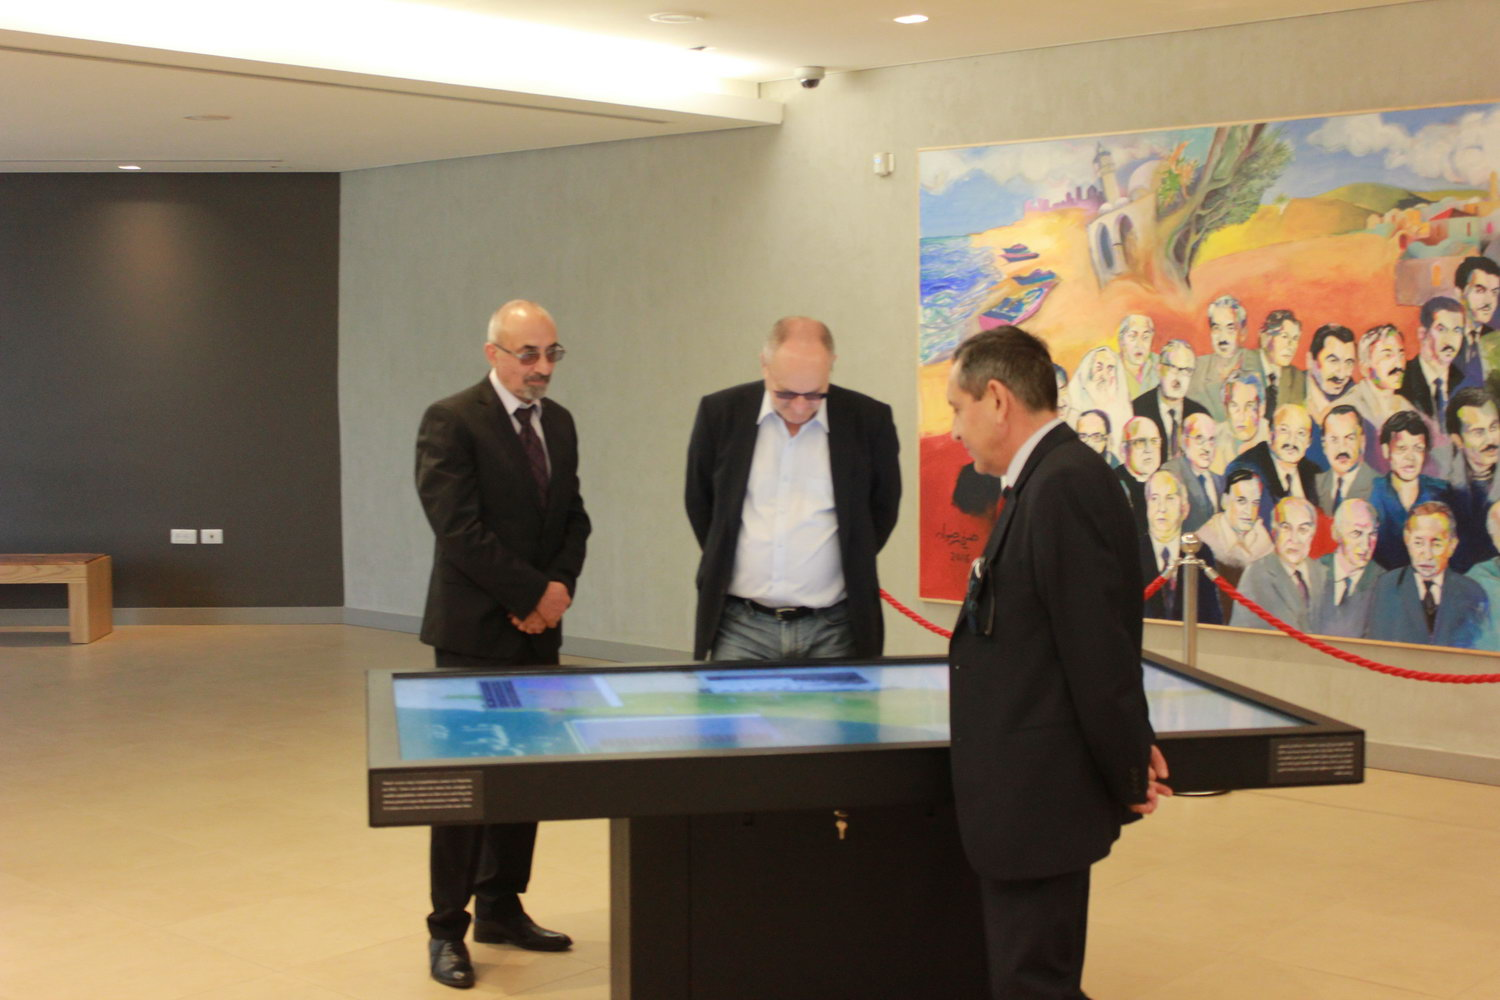 A delegation from the Republic of Bulgaria visits Yasser Arafat Memorial